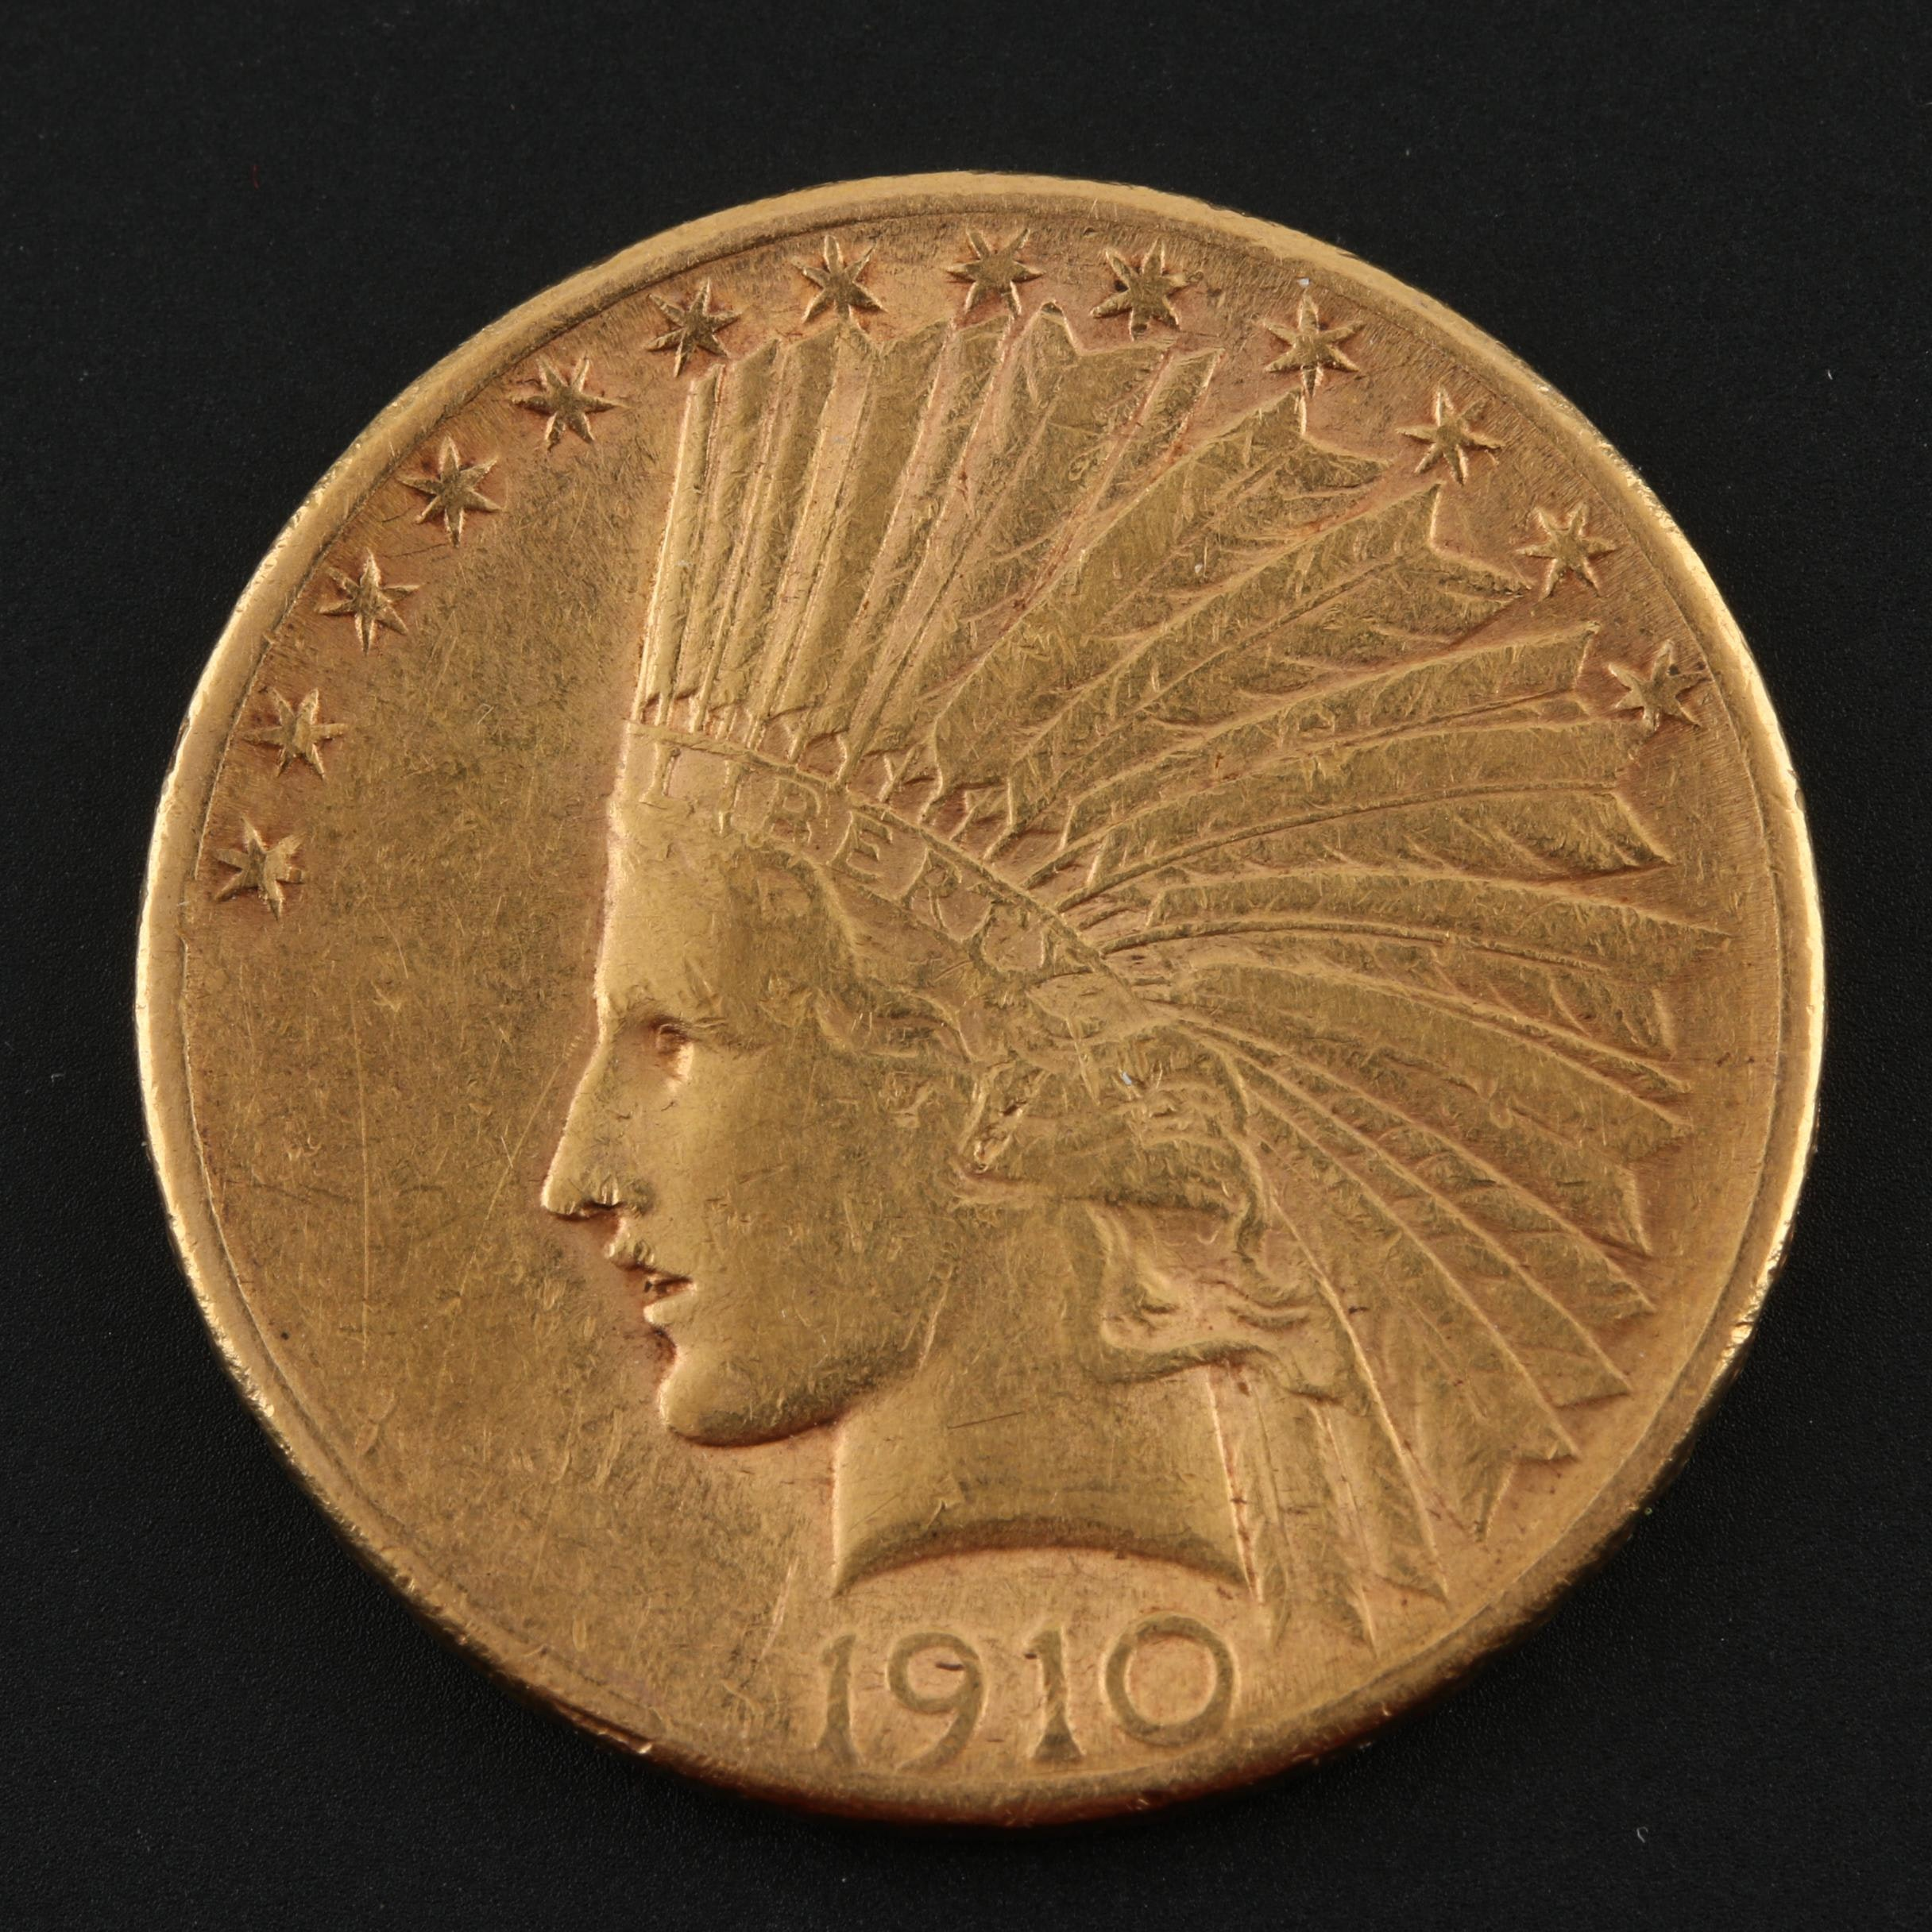 1910-S Indian Head $10 Gold Coin